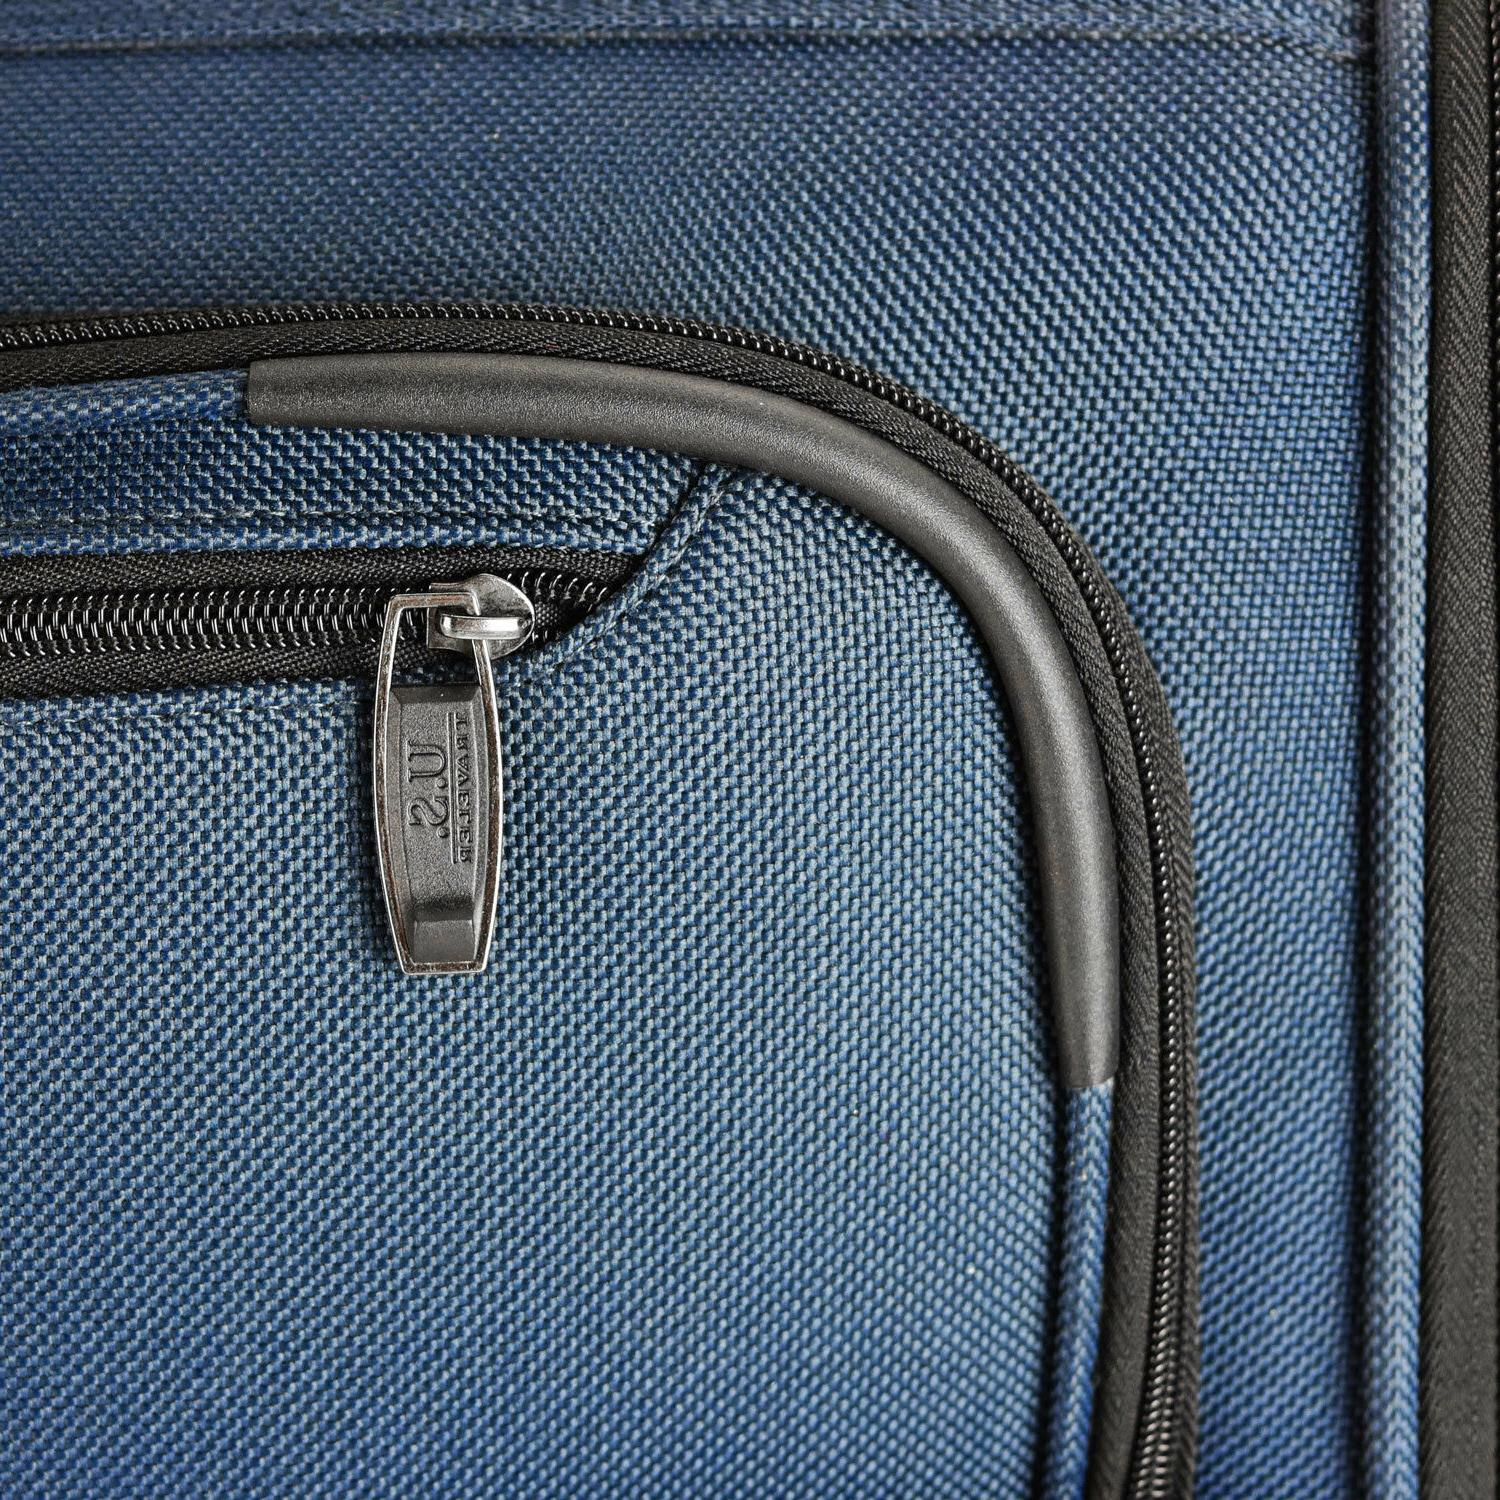 US Traveler Carry-On Friendly Spinner Bag Suitcase